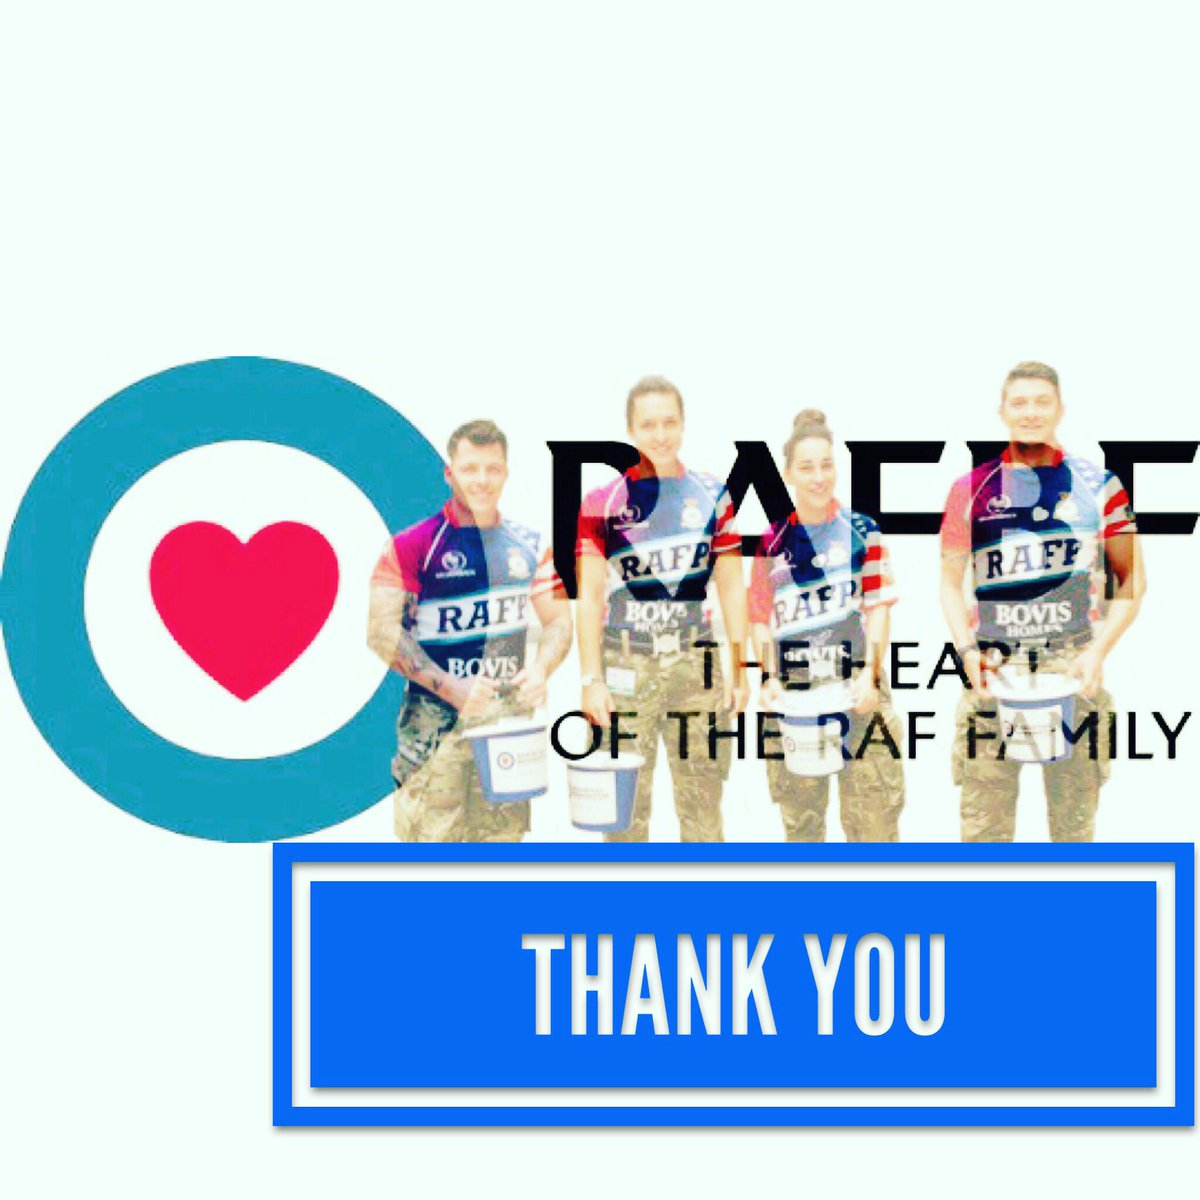 #thankyou all yesterday, especially to Bally, Katherine, Tara &amp; Rich taking time out of their day to raise £395 for @RAFBF #flyingpigsrugby<br>http://pic.twitter.com/vEOhXgZEOv